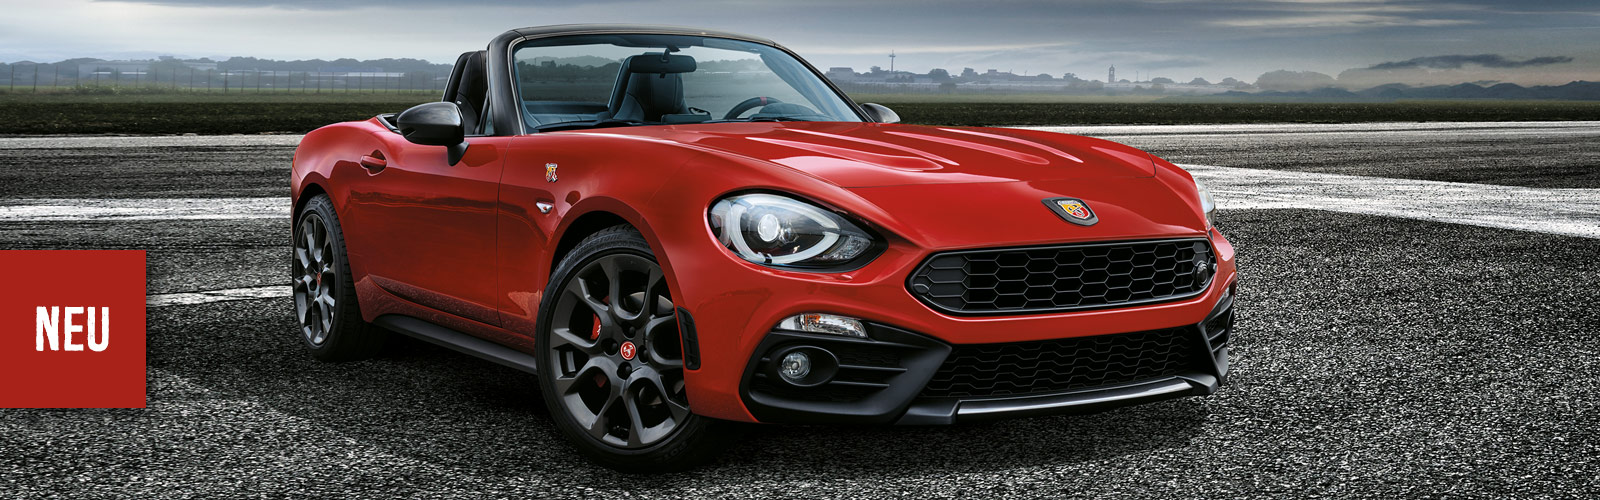 Abarth 124 Spider im Autozentrum Preckel